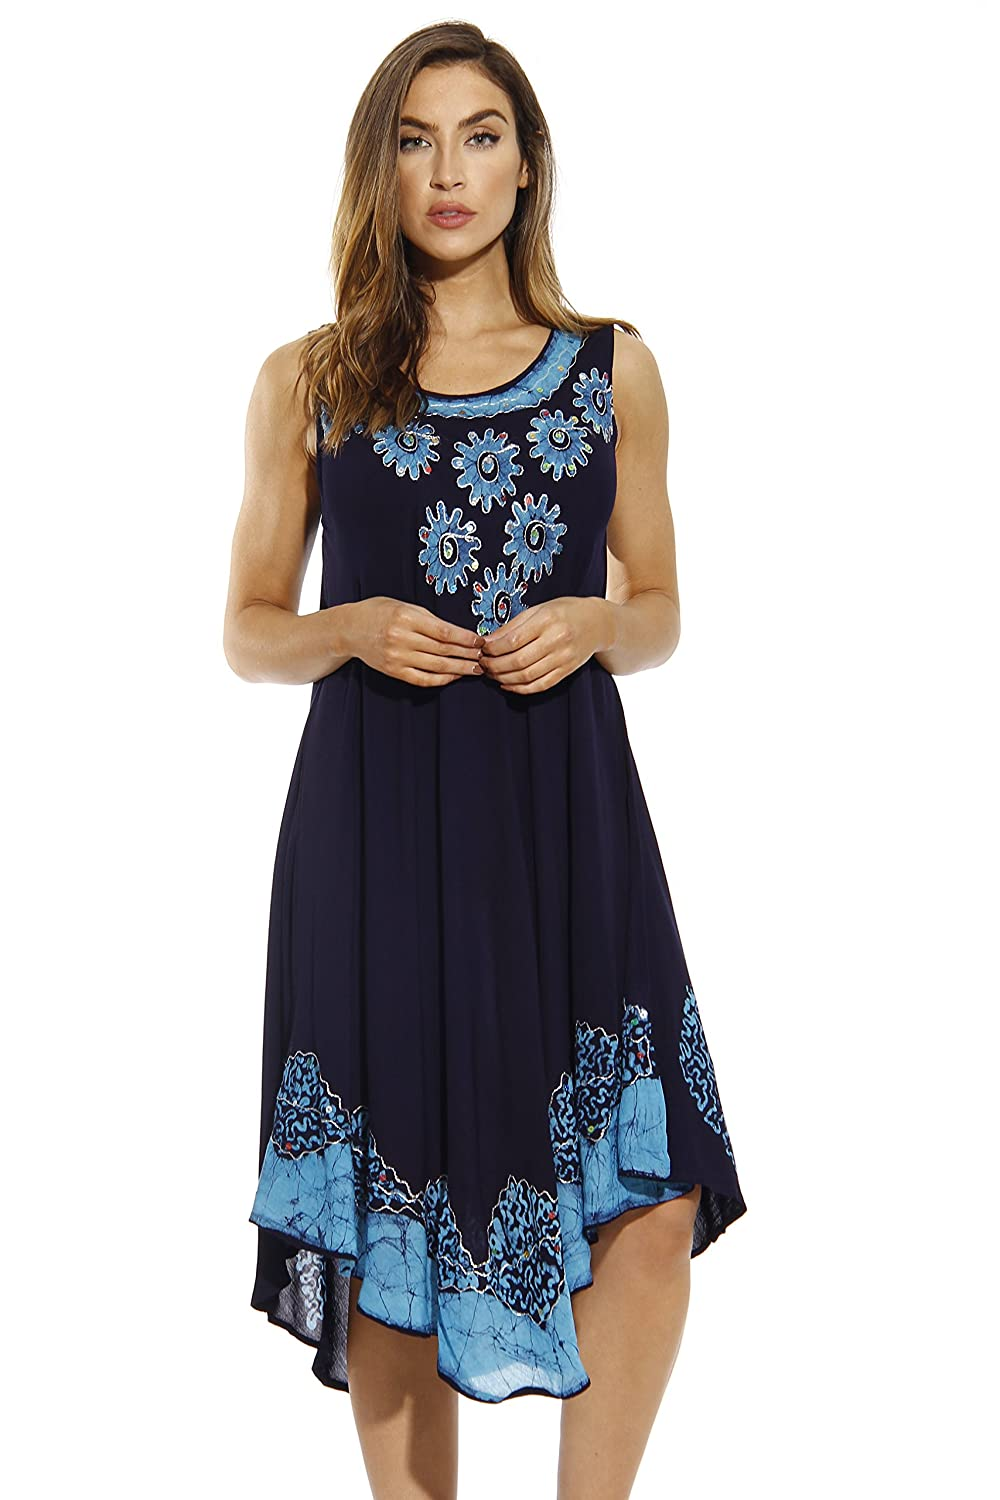 f1805a5ec4a2 SWITCH IT UP  You ll love the versatility of these summer casual dresses.  You can dress them up with wedges for that afternoon lunch